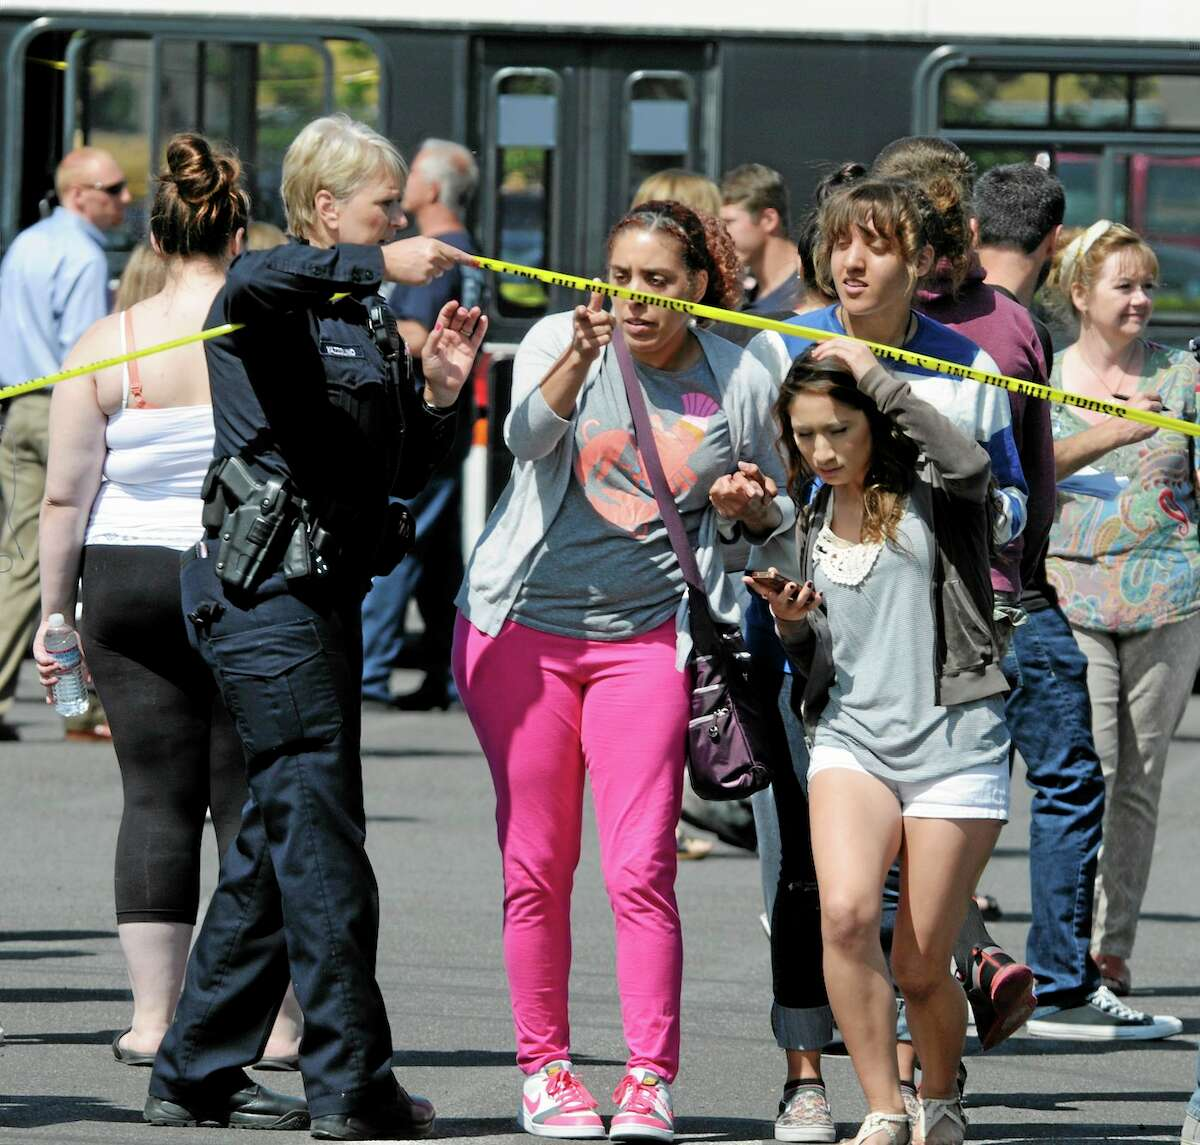 A police officer lifts up police tape as students are arrive by bus to meet their parents and/or family at the Fred Meyer grocery store parking lot in Wood Village, Ore., after a shooting at Reynolds High School Tuesday, June 10, 2014, in nearby Troutdale. A gunman killed a student at the high school east of Portland Tuesday and the shooter is also dead, police said. (AP Photo/Greg Wahl-Stephens)